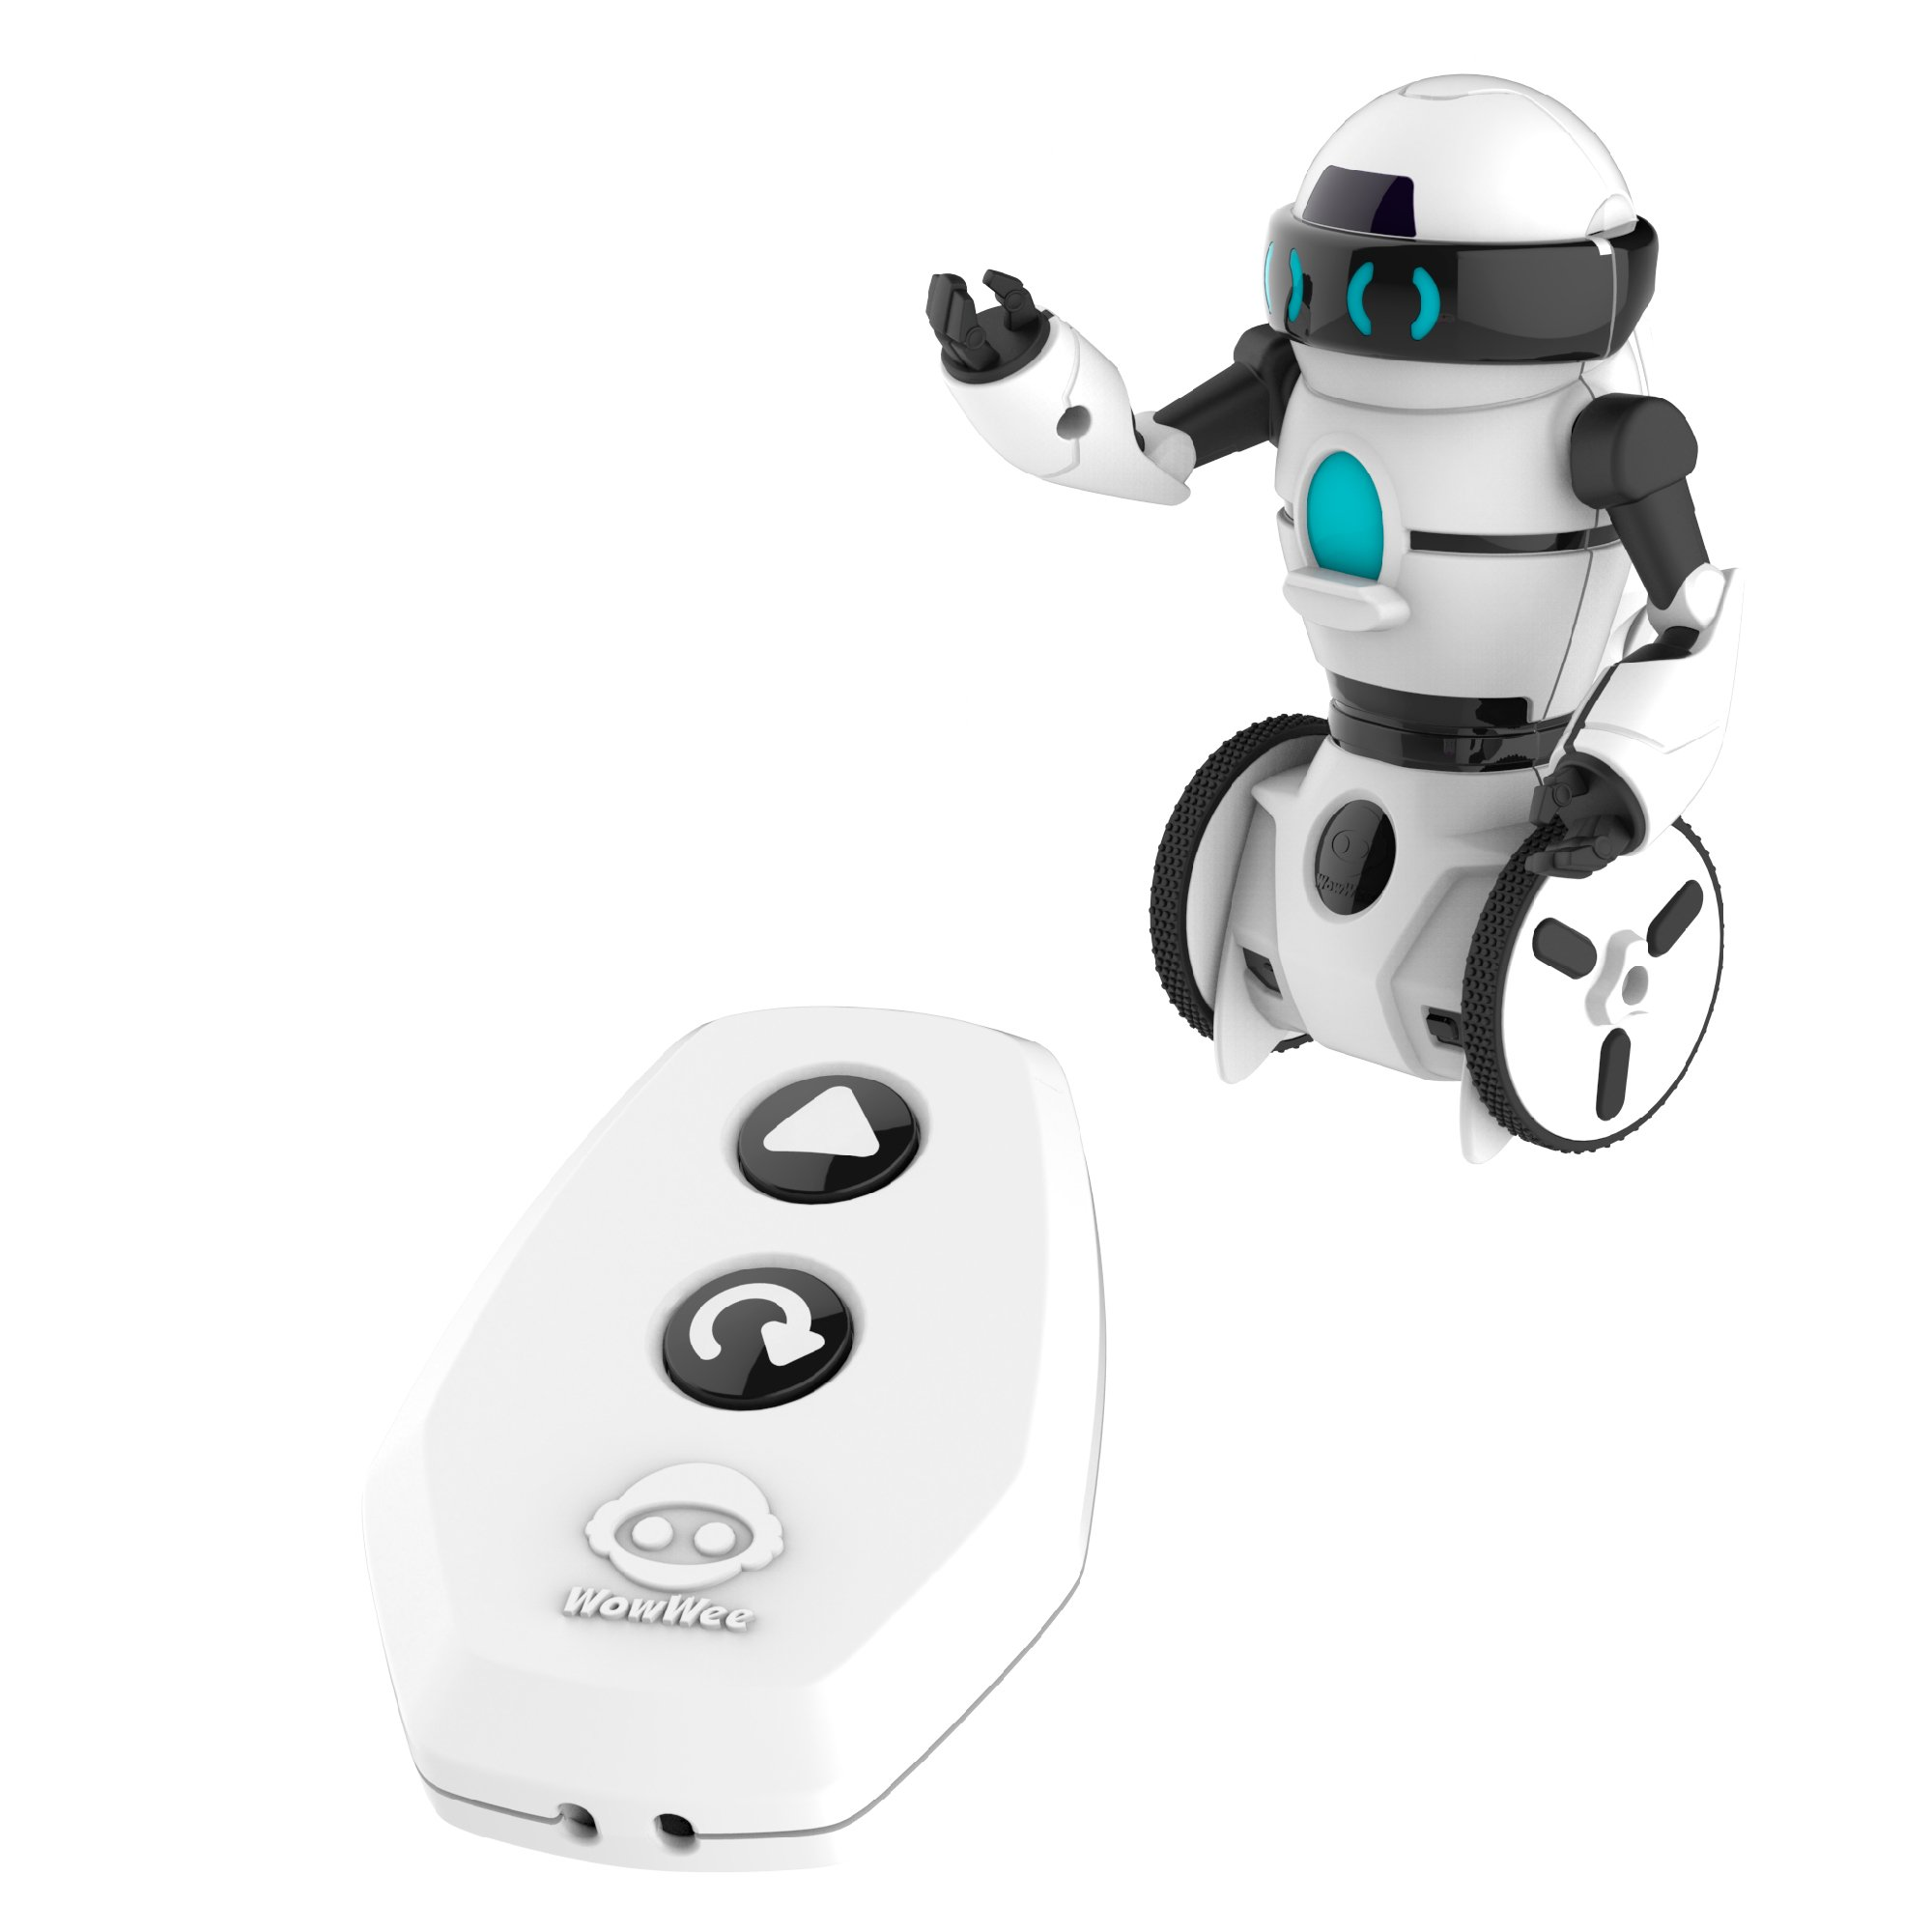 WowWee Mip RC Mini Edition Remote Control Robot by WowWee (Image #3)